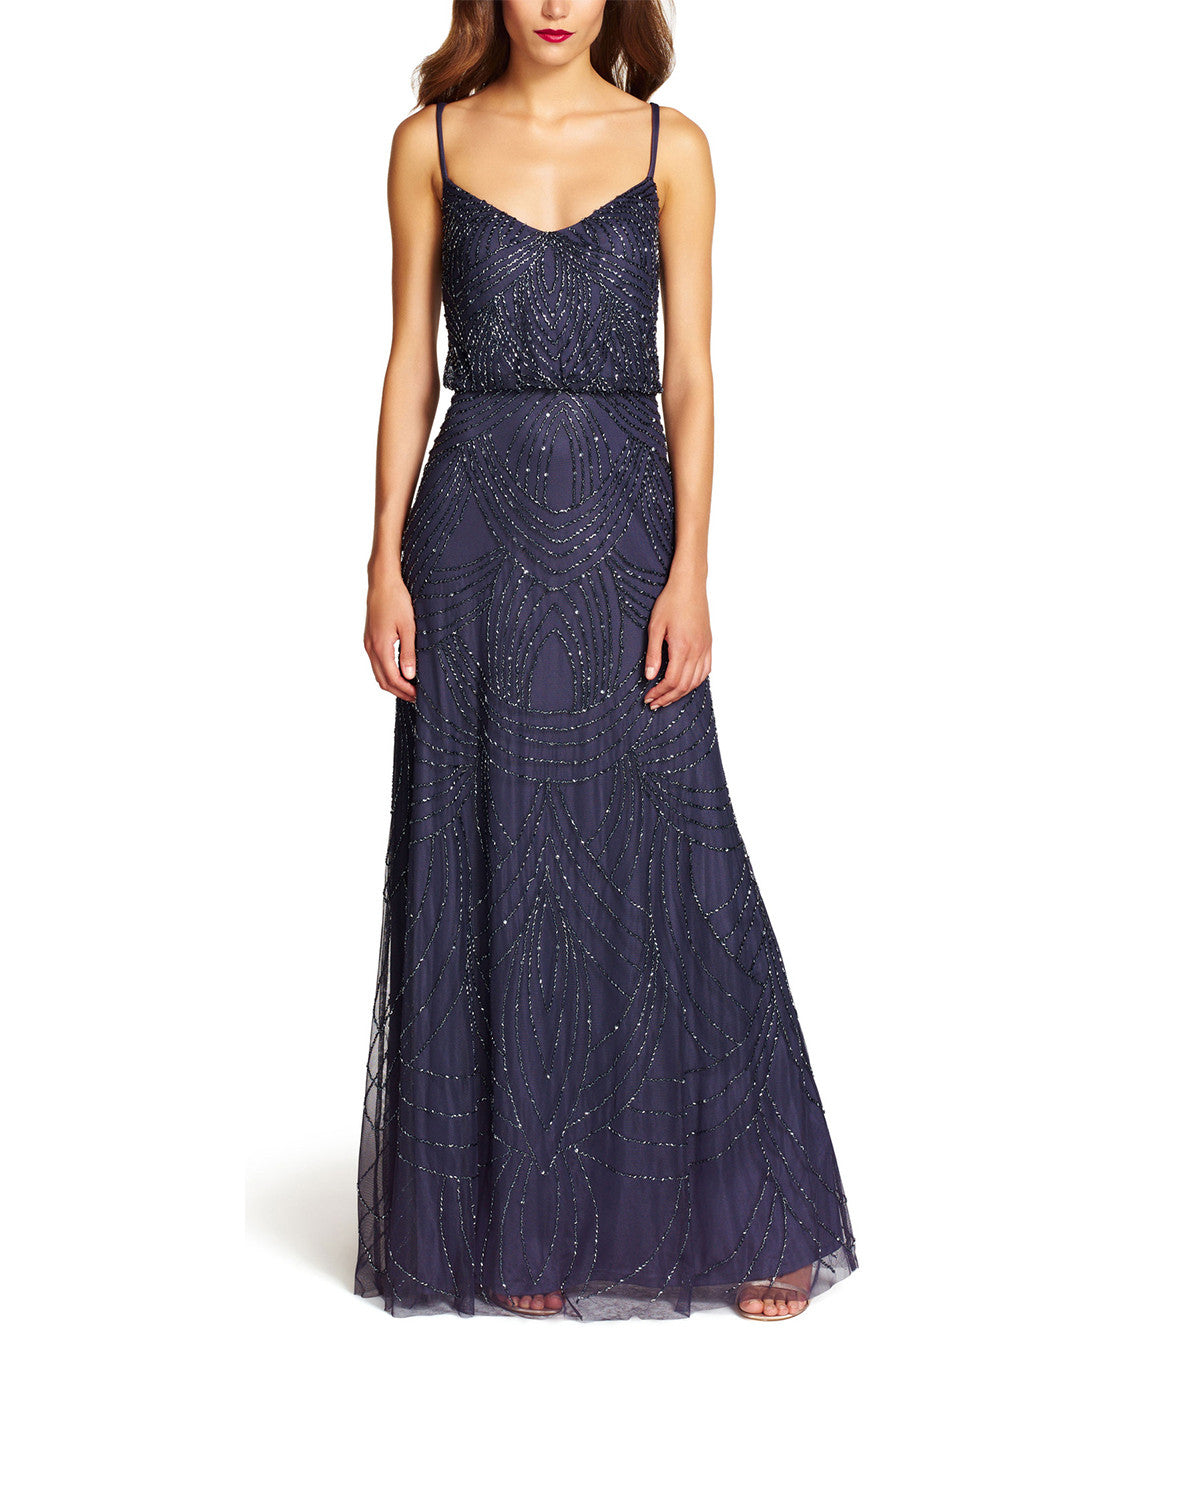 Adrianna Papell Beaded Blouson Gown in Gunmetal - Sample Bridesmaid ...